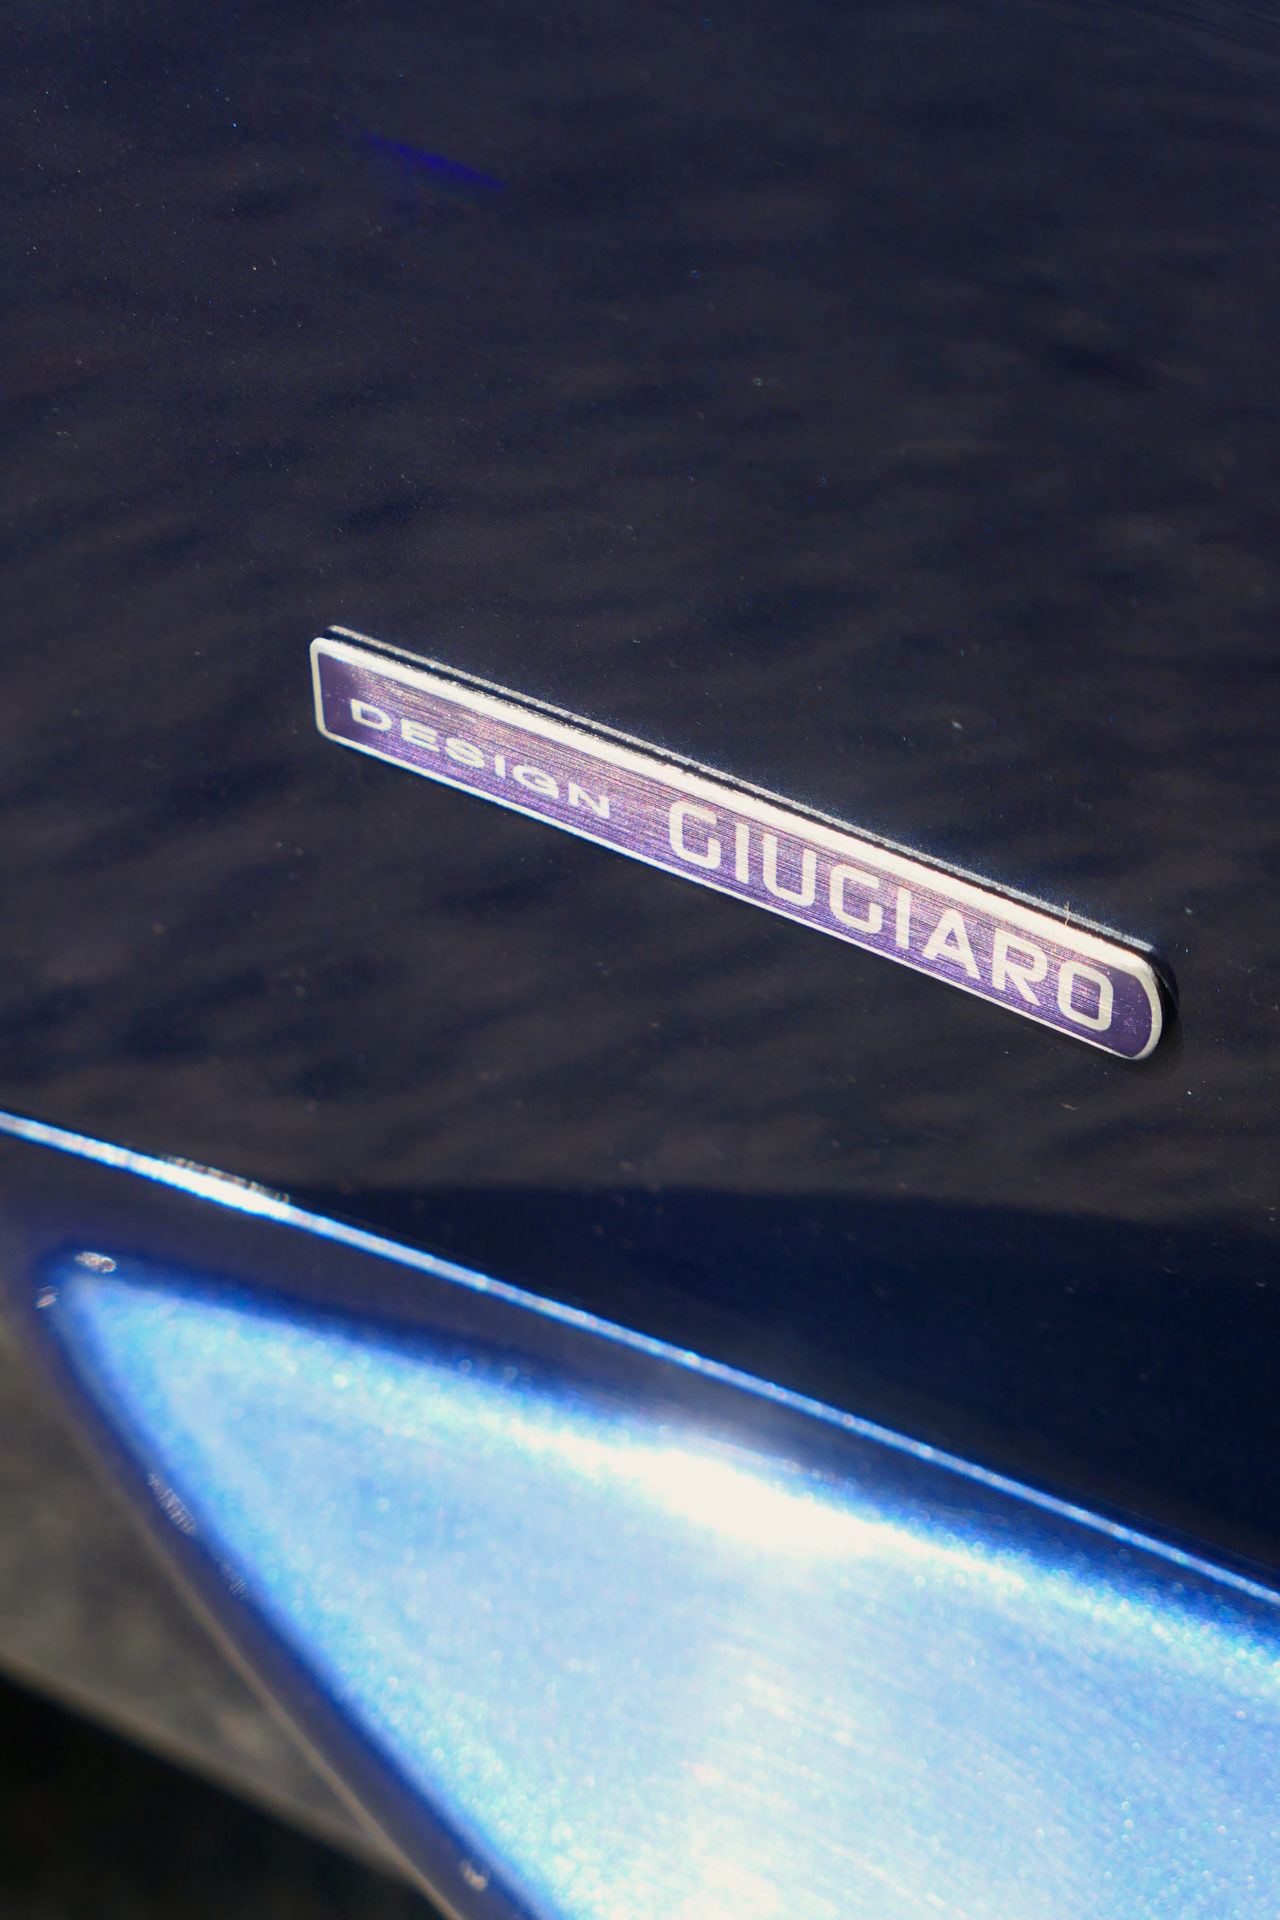 roadrugcars road rug cars maserati gransport spyder giugiaro design badge